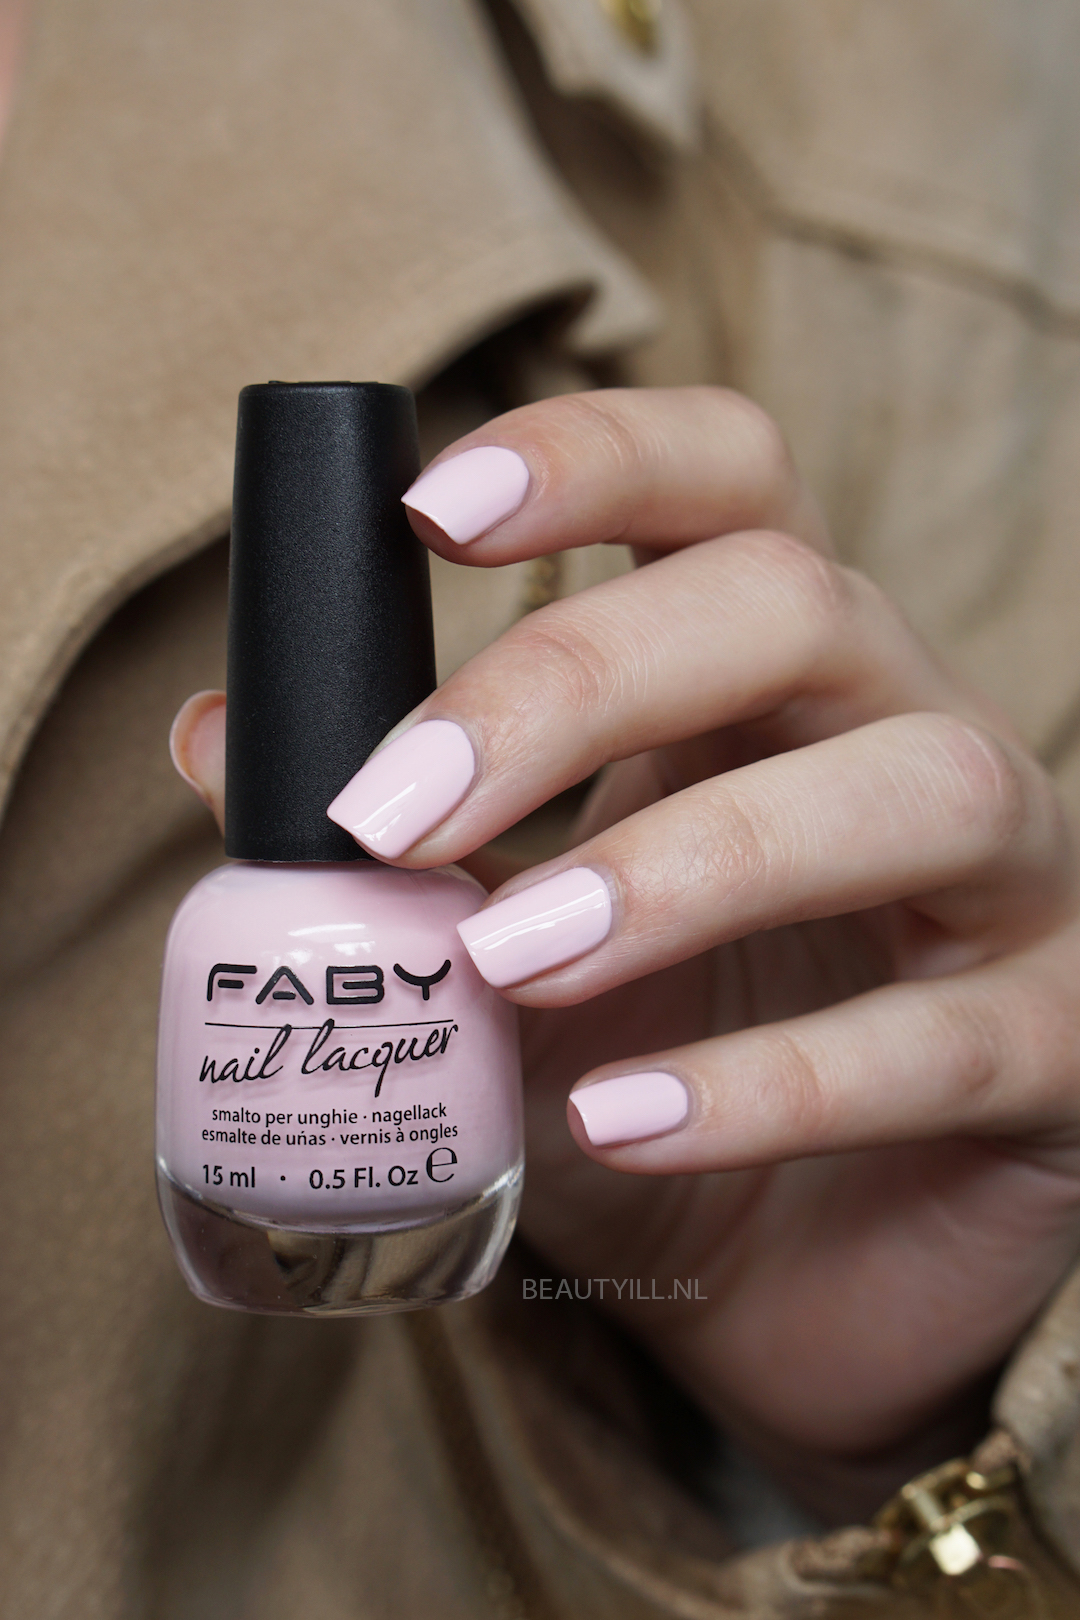 FABY, I'M FABY swatches, ciao bella